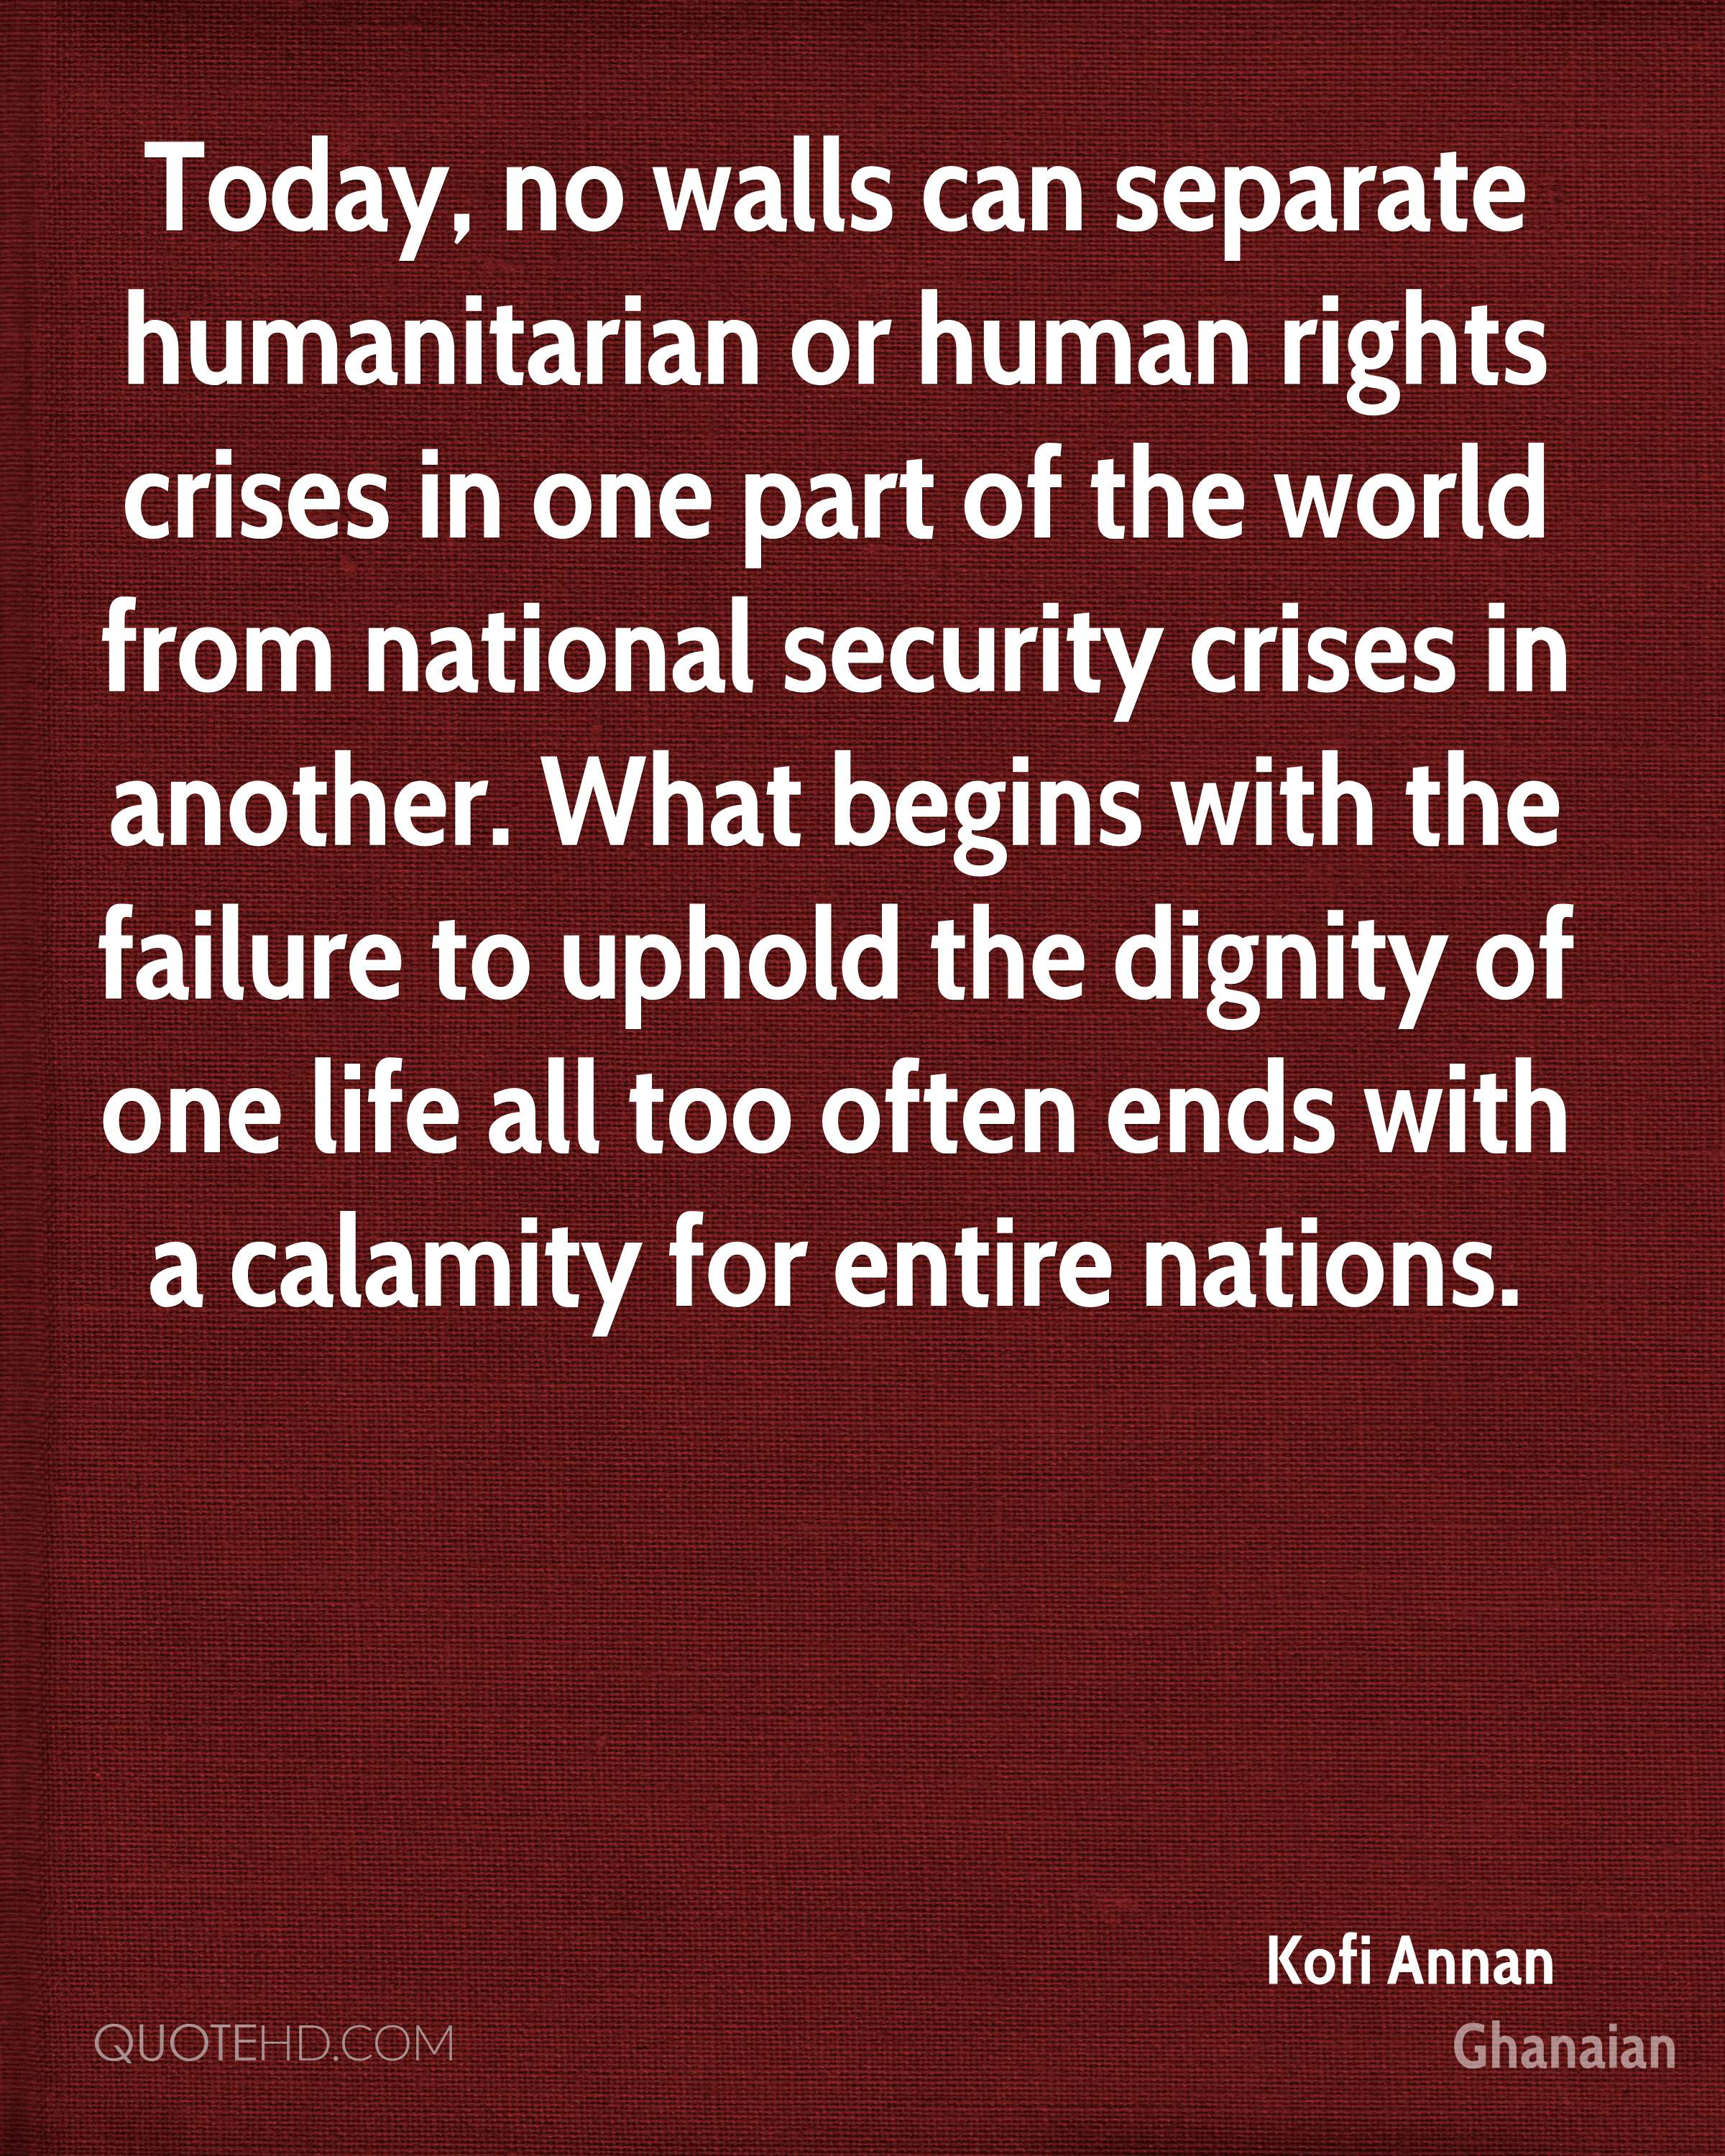 Today, no walls can separate humanitarian or human rights crises in one part of the world from national security crises in another. What begins with the failure to uphold the dignity of one life all too often ends with a calamity for entire nations.